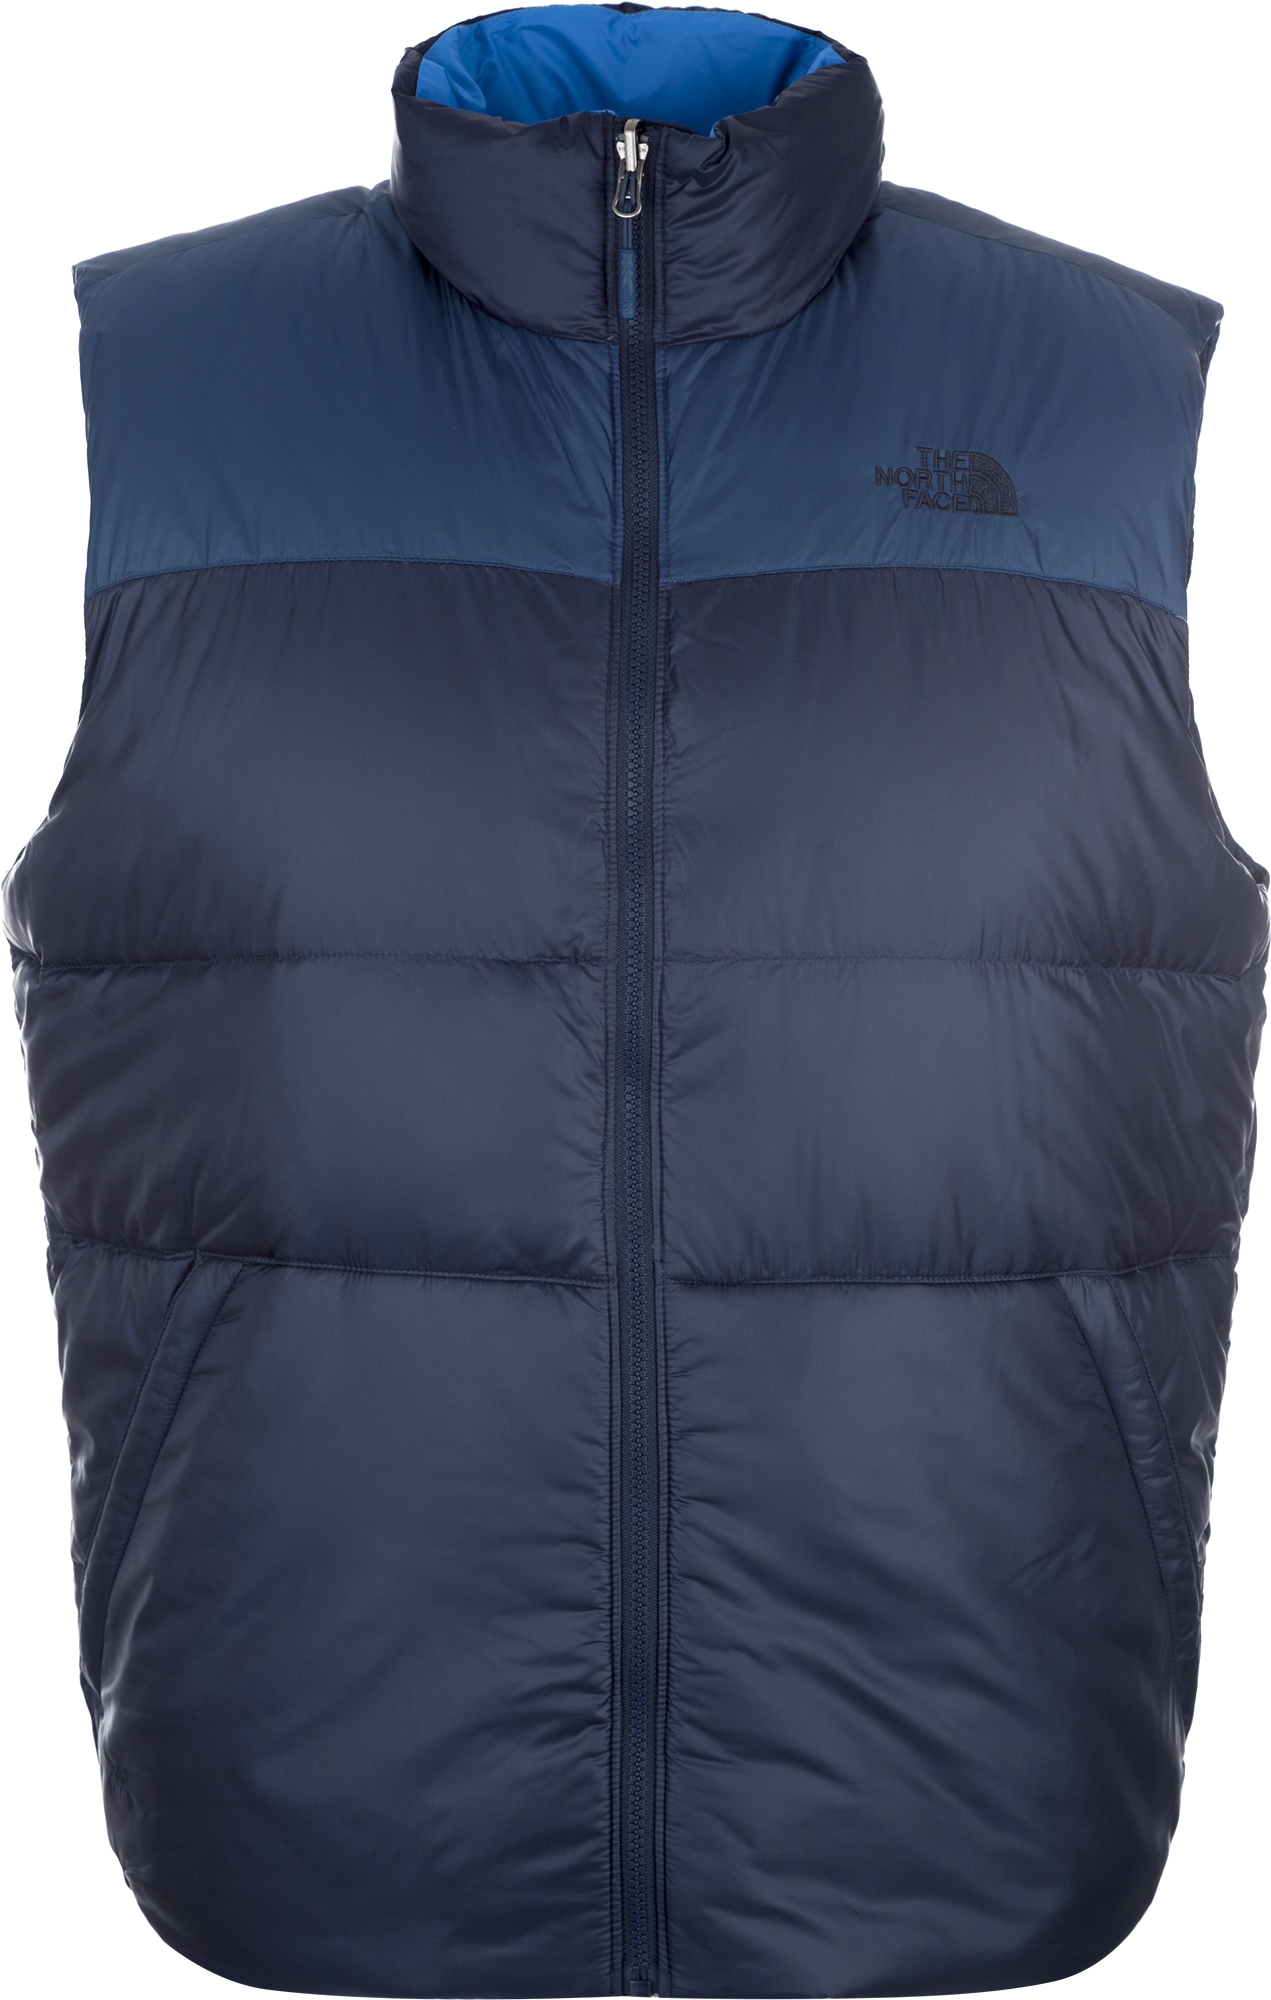 The North Face Жилет пуховой мужской The North Face Nuptse III Vest, размер 50 тапочки the north face the north face nuptse tent mule iii женские